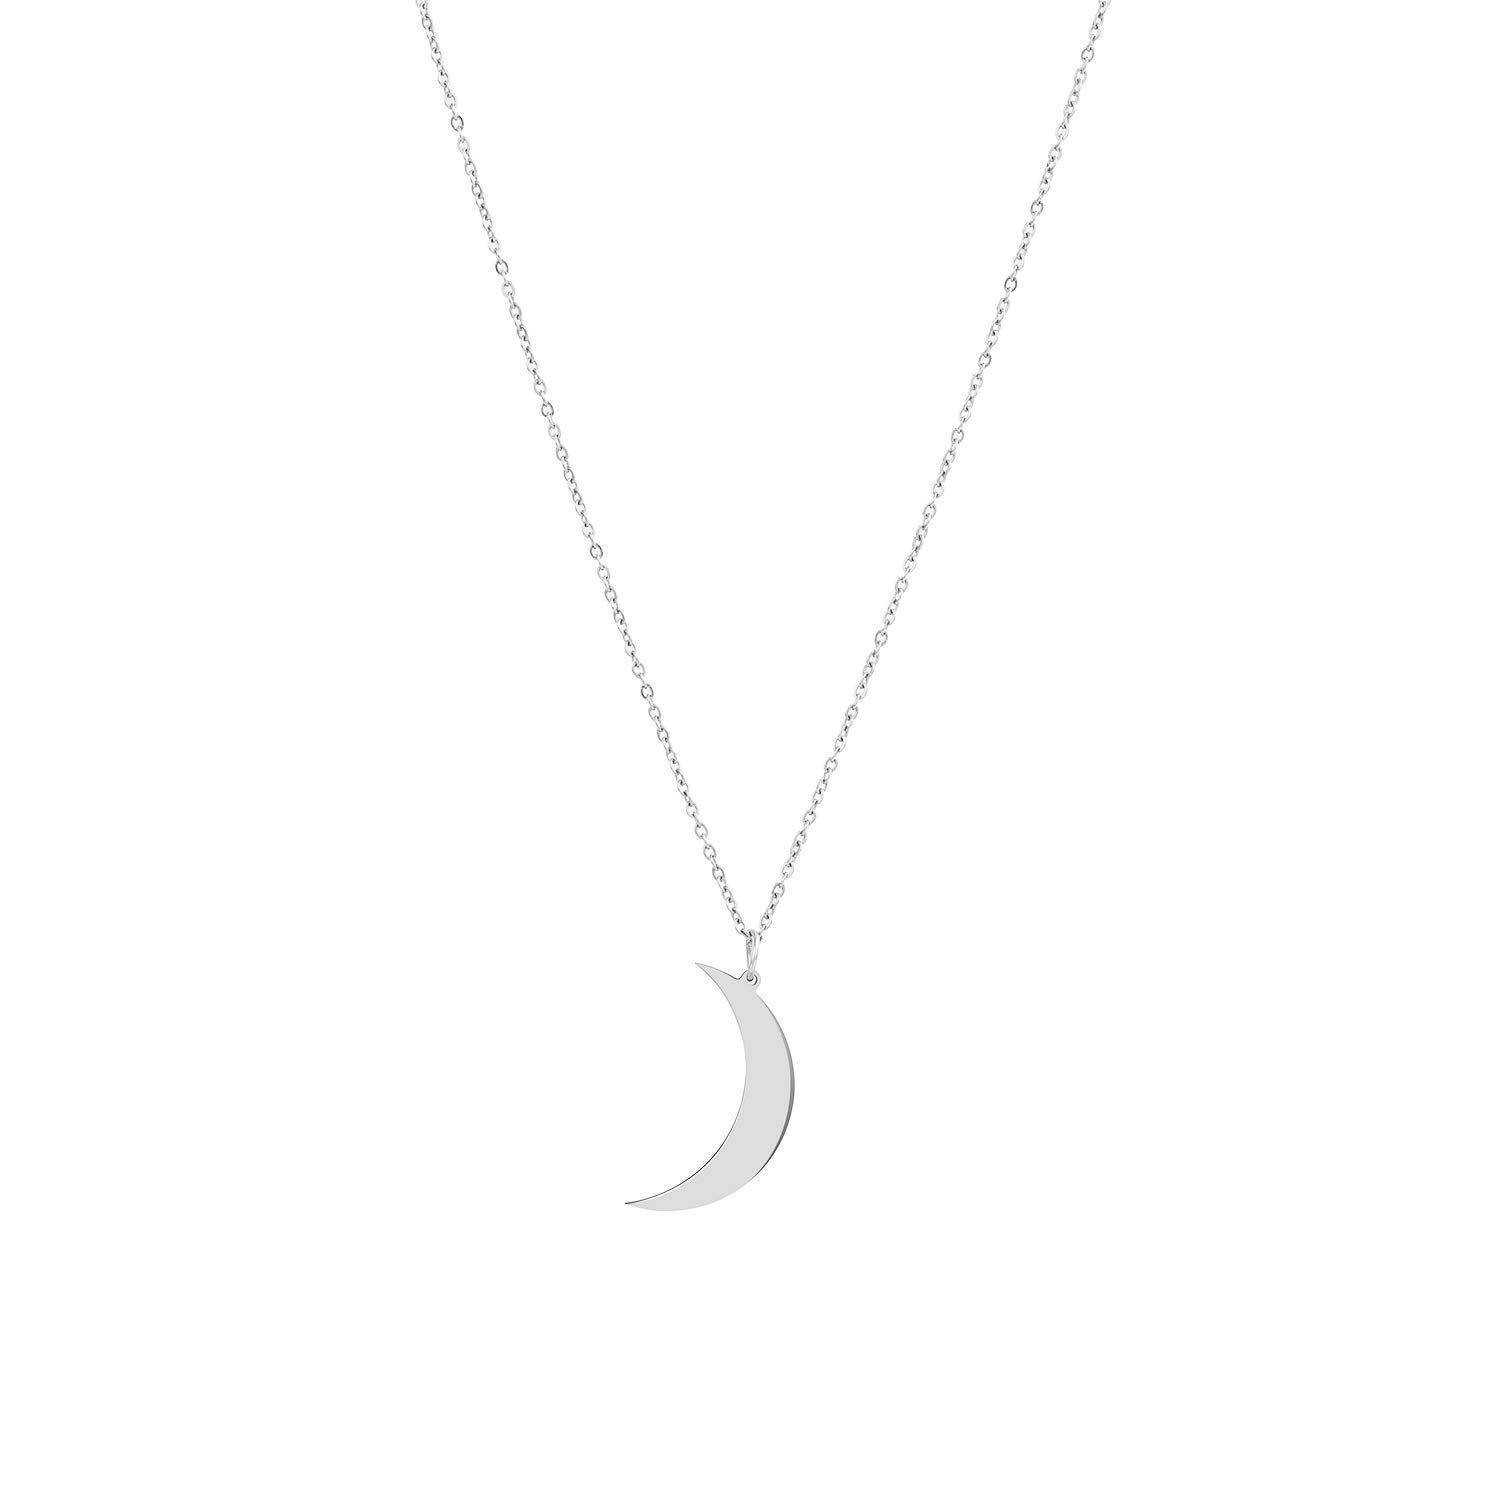 Molyveva Love Heart Crescent Moon Pendant Necklace I Love You to The Moon and Back Necklace